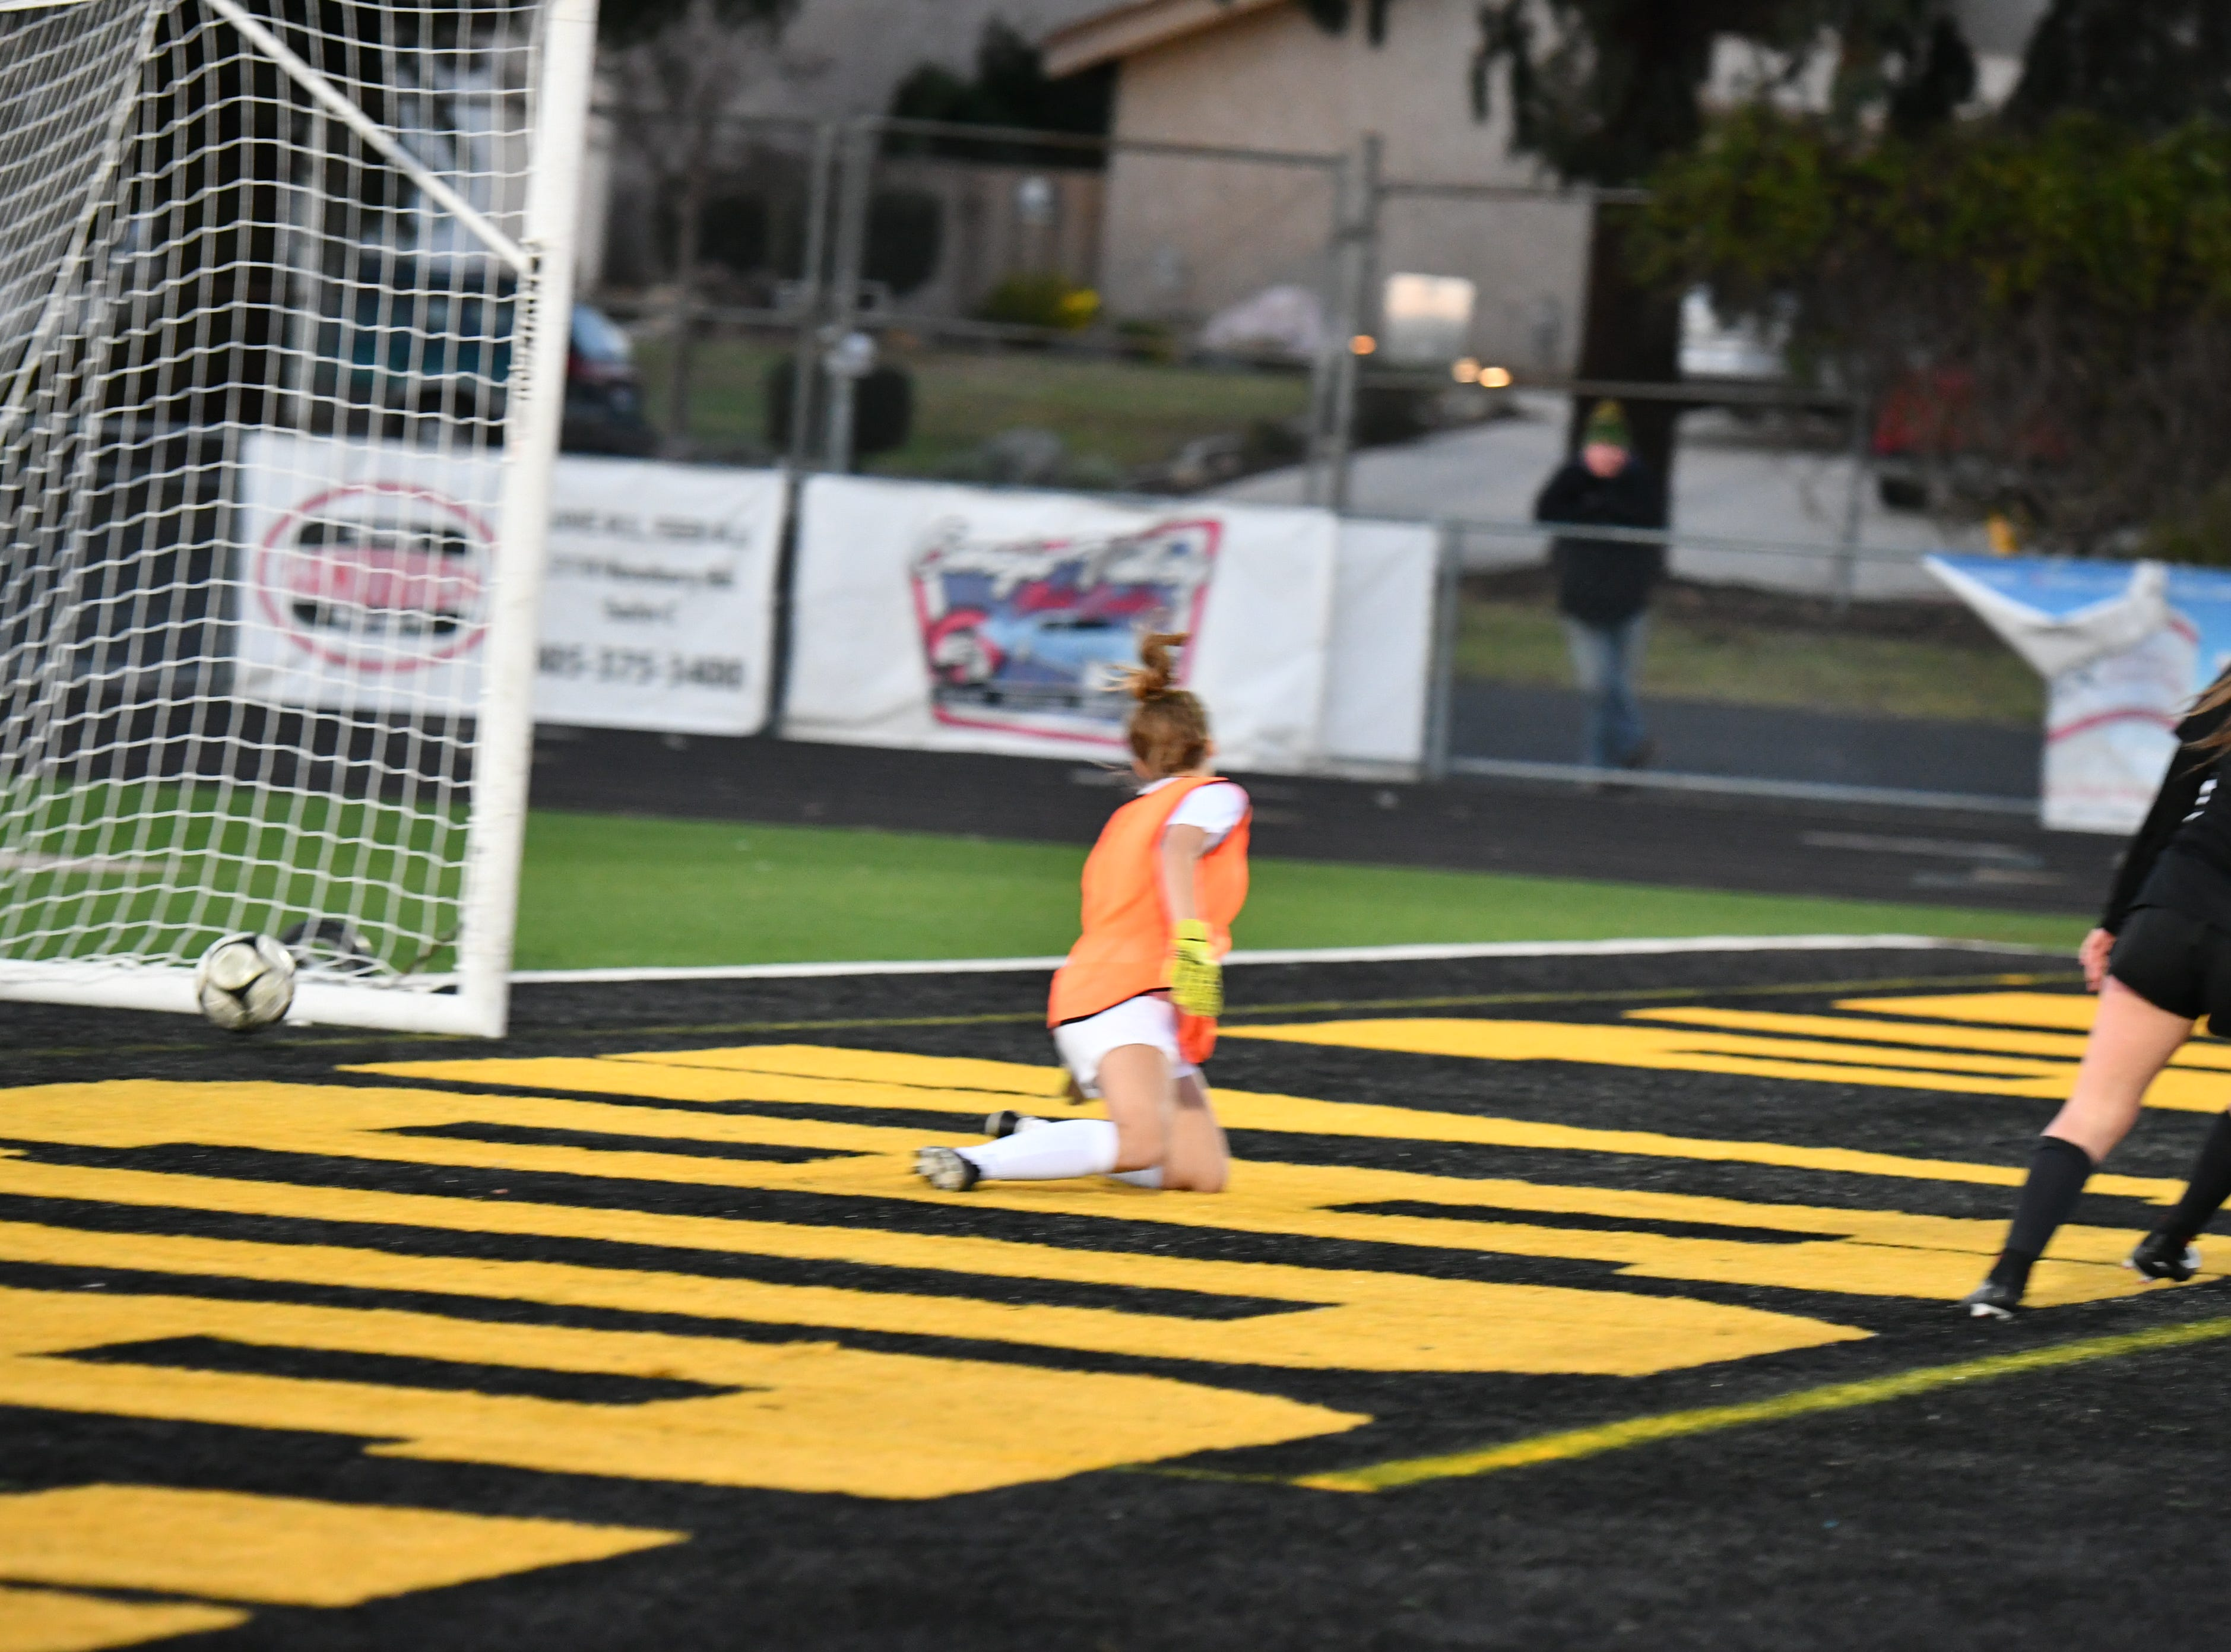 Newbury Park senior Kaitlyn McKeown finishes her second of three goals against Royal on Wednesday in the first round of the CIF-Southern Section Division 2 playoffs at Newbury Park High. Newbury Park won, 3-0.